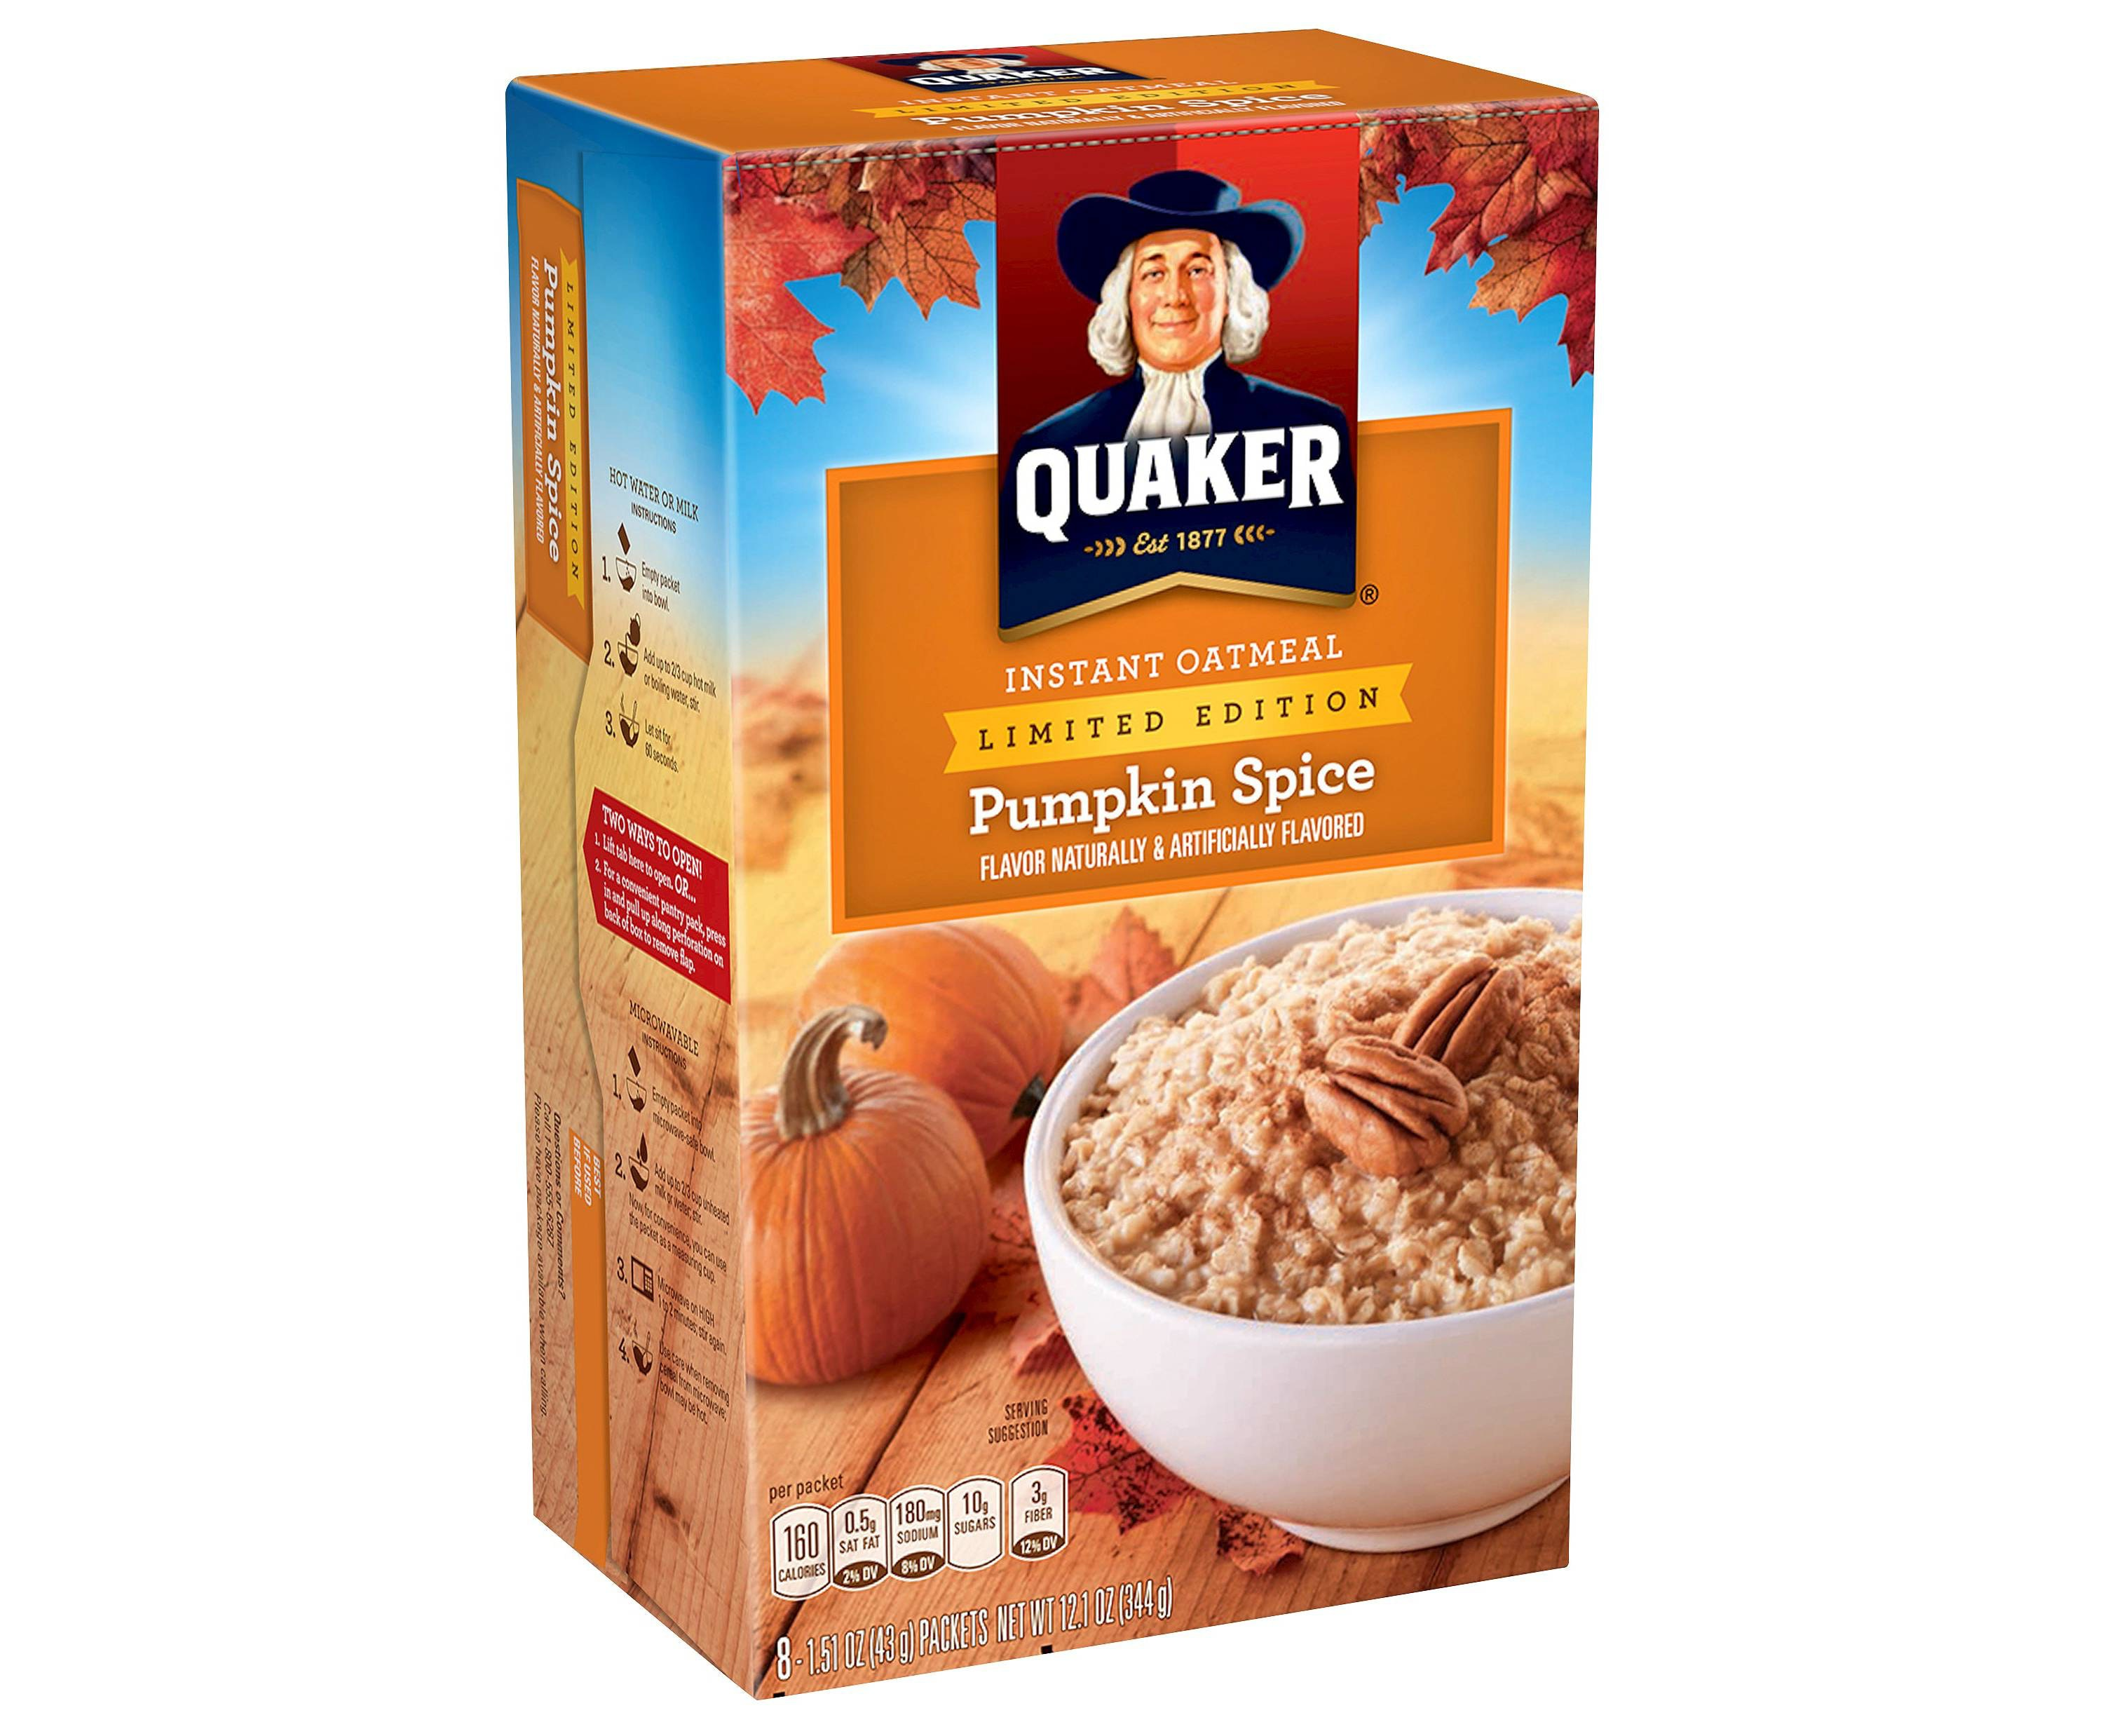 This pumpkin spice oatmeal that's ready to eat in 60 seconds